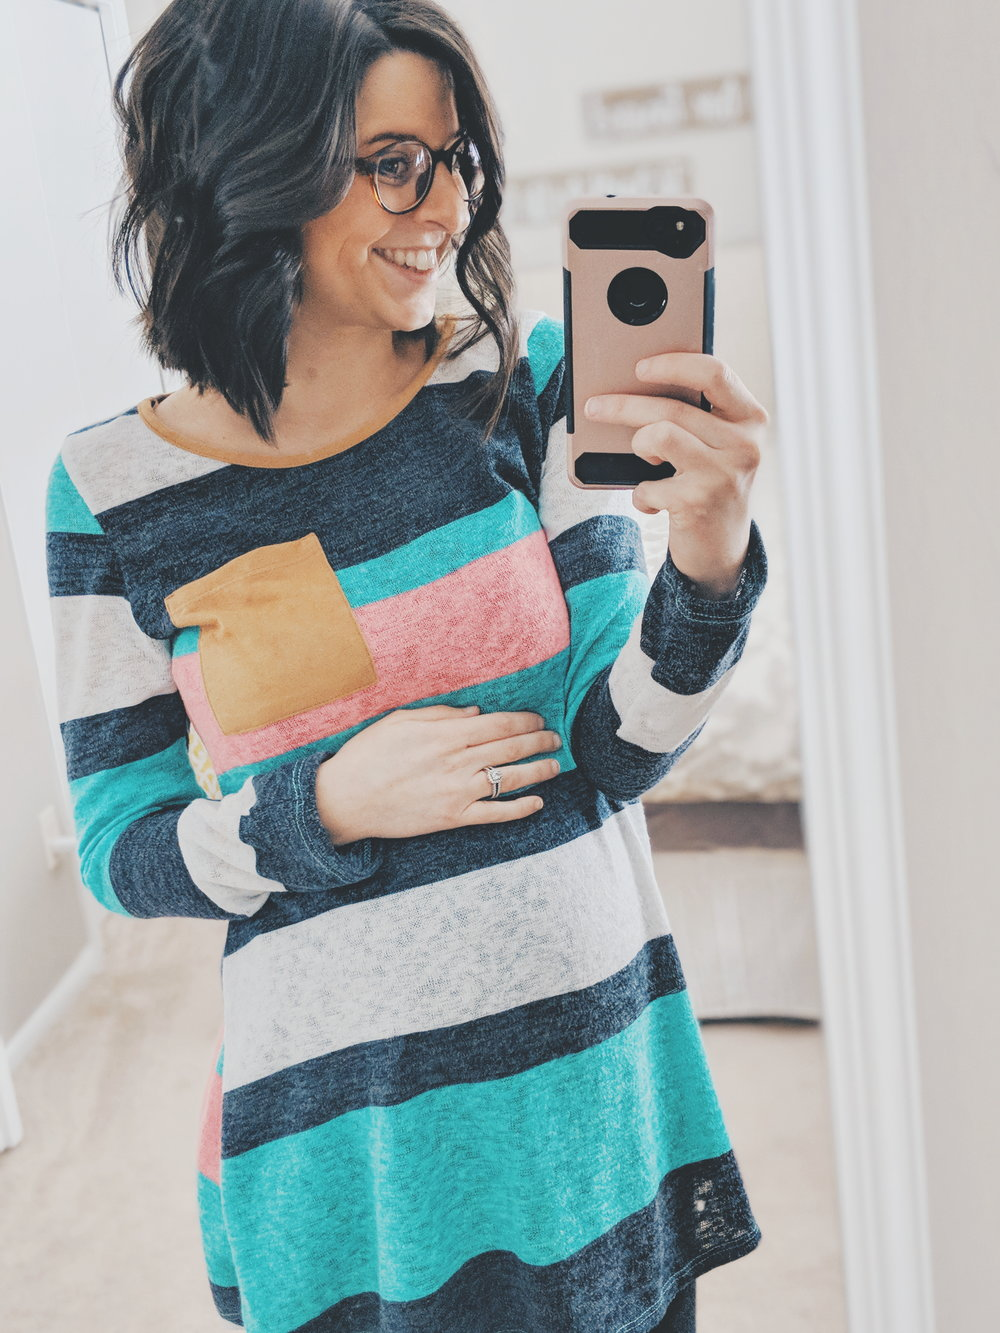 21 weeks | Fresh cut, fresh specs ;) and another favorite lightweight winter --> spring transition top from  PinkBlush . I mean... look at those colors *heart eyes.*